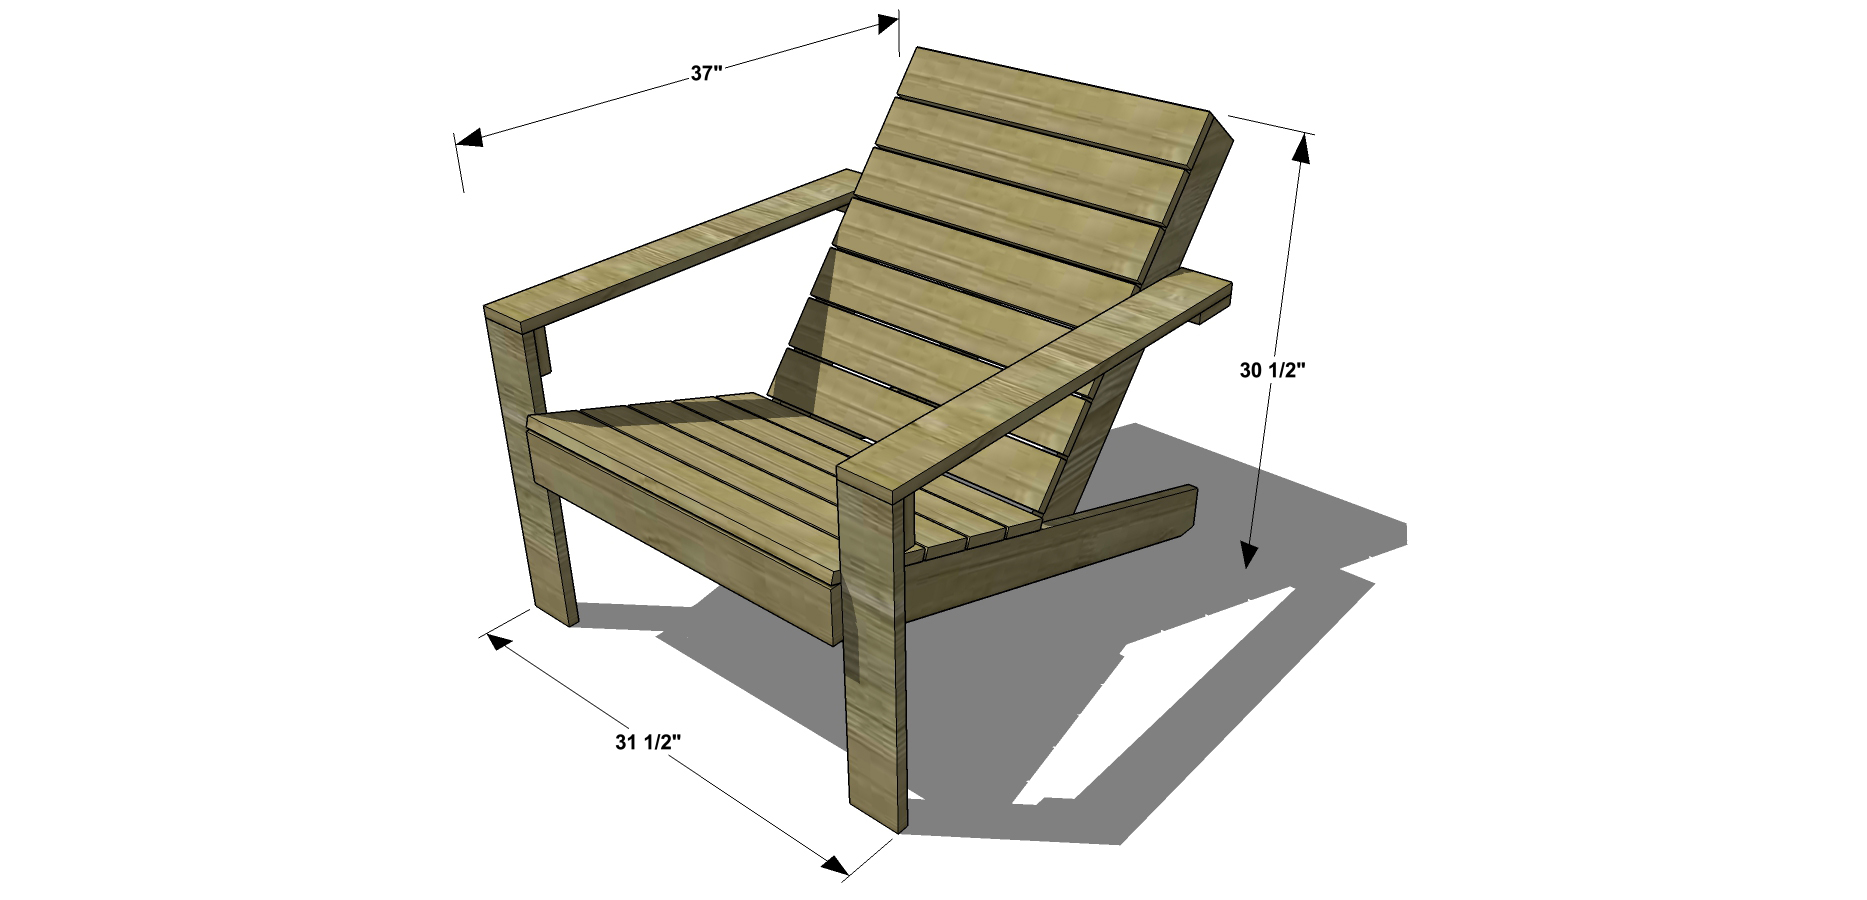 adirondack chair blueprints cow print office free diy furniture plans how to build an outdoor modern